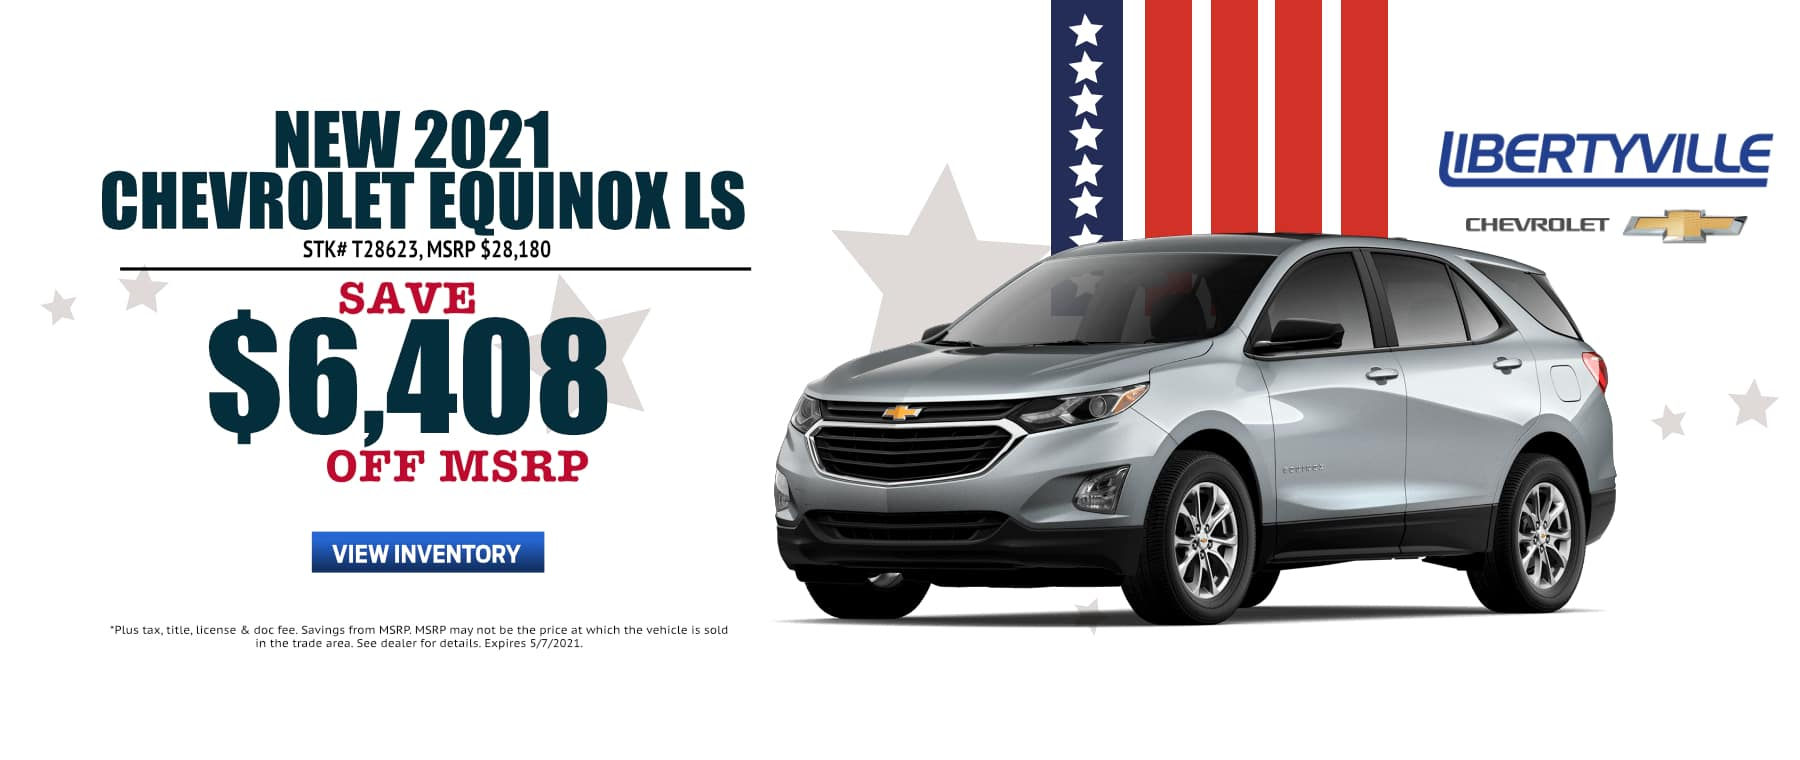 April_2021_Equinox_Libertyville_Chevrolet_